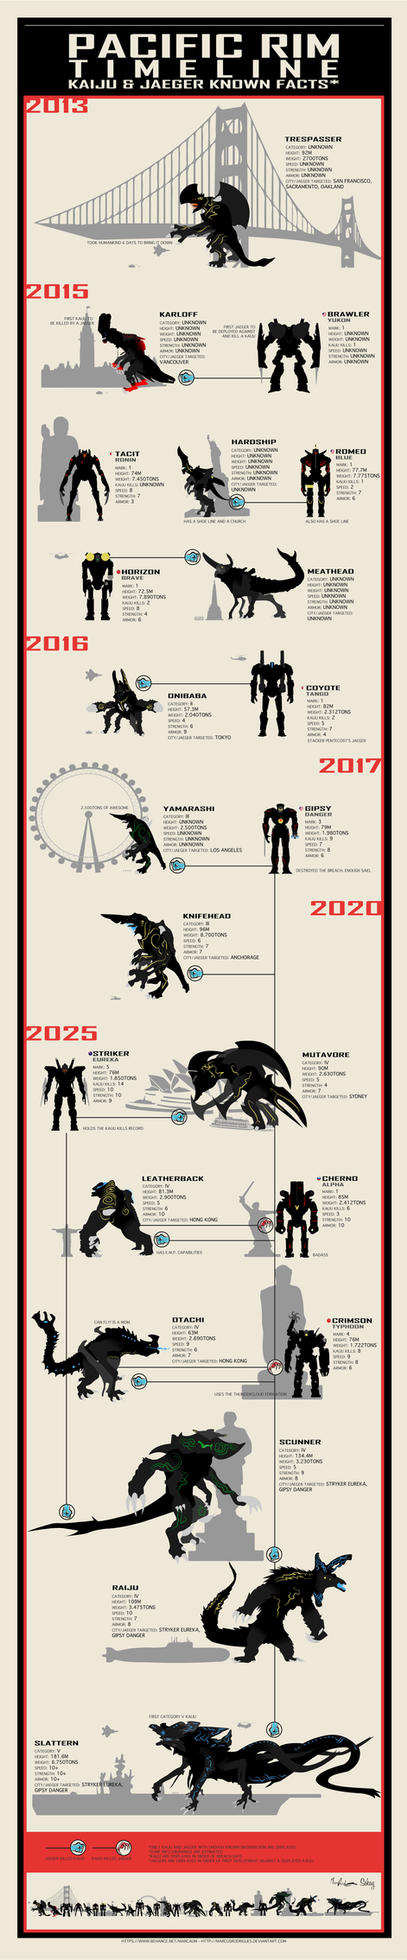 Pacific Rim Infographic by marcusrodrigues